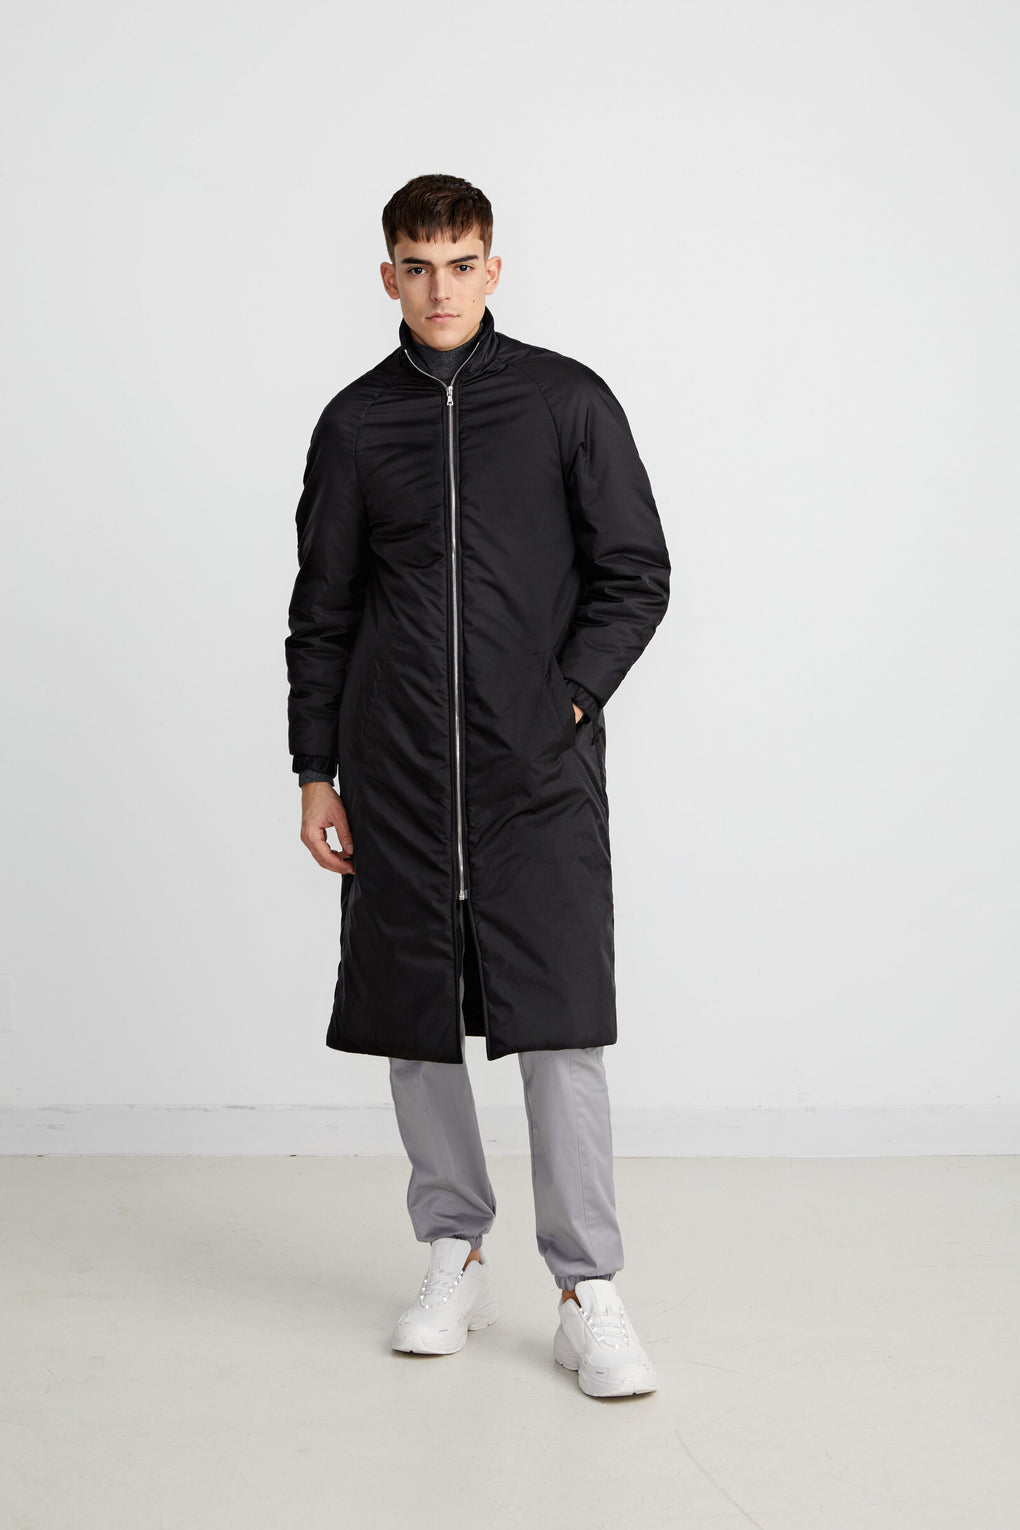 Maxi City Puffer - SHOPNECESSARY6.0